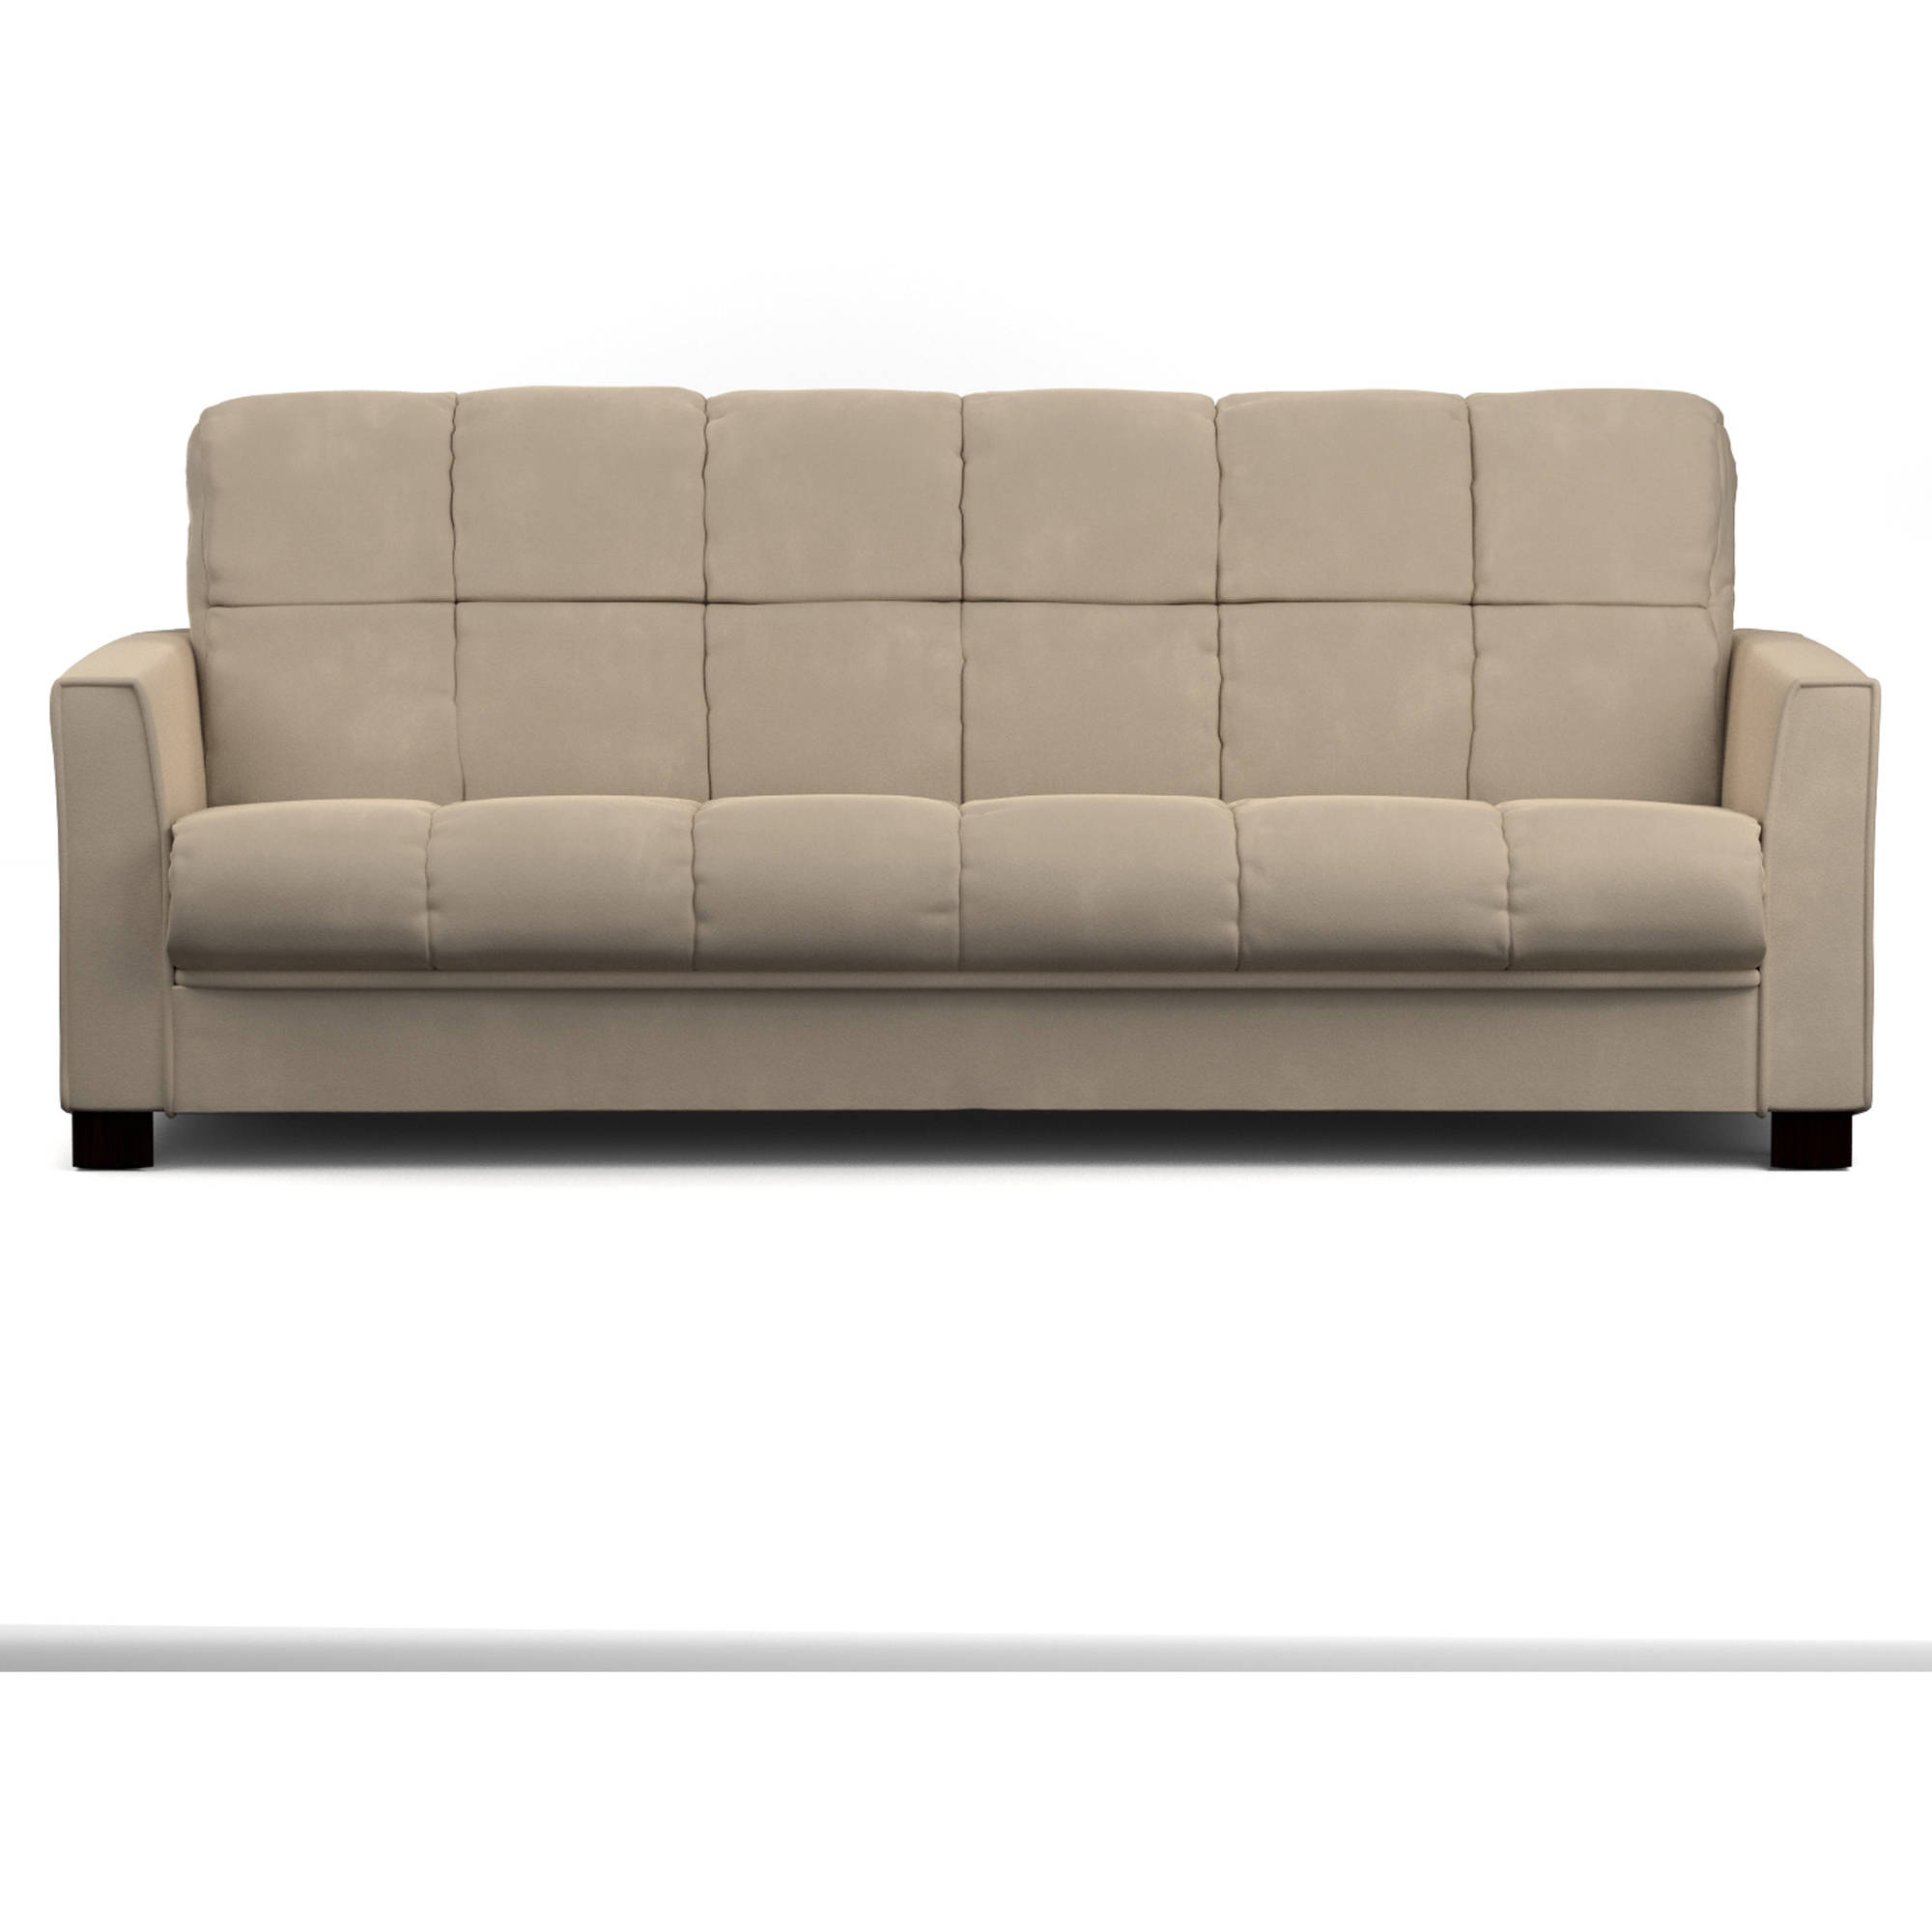 Baja sofa sleeper wwwenergywardennet for Baja convert a couch sofa bed with set of 2 recliners